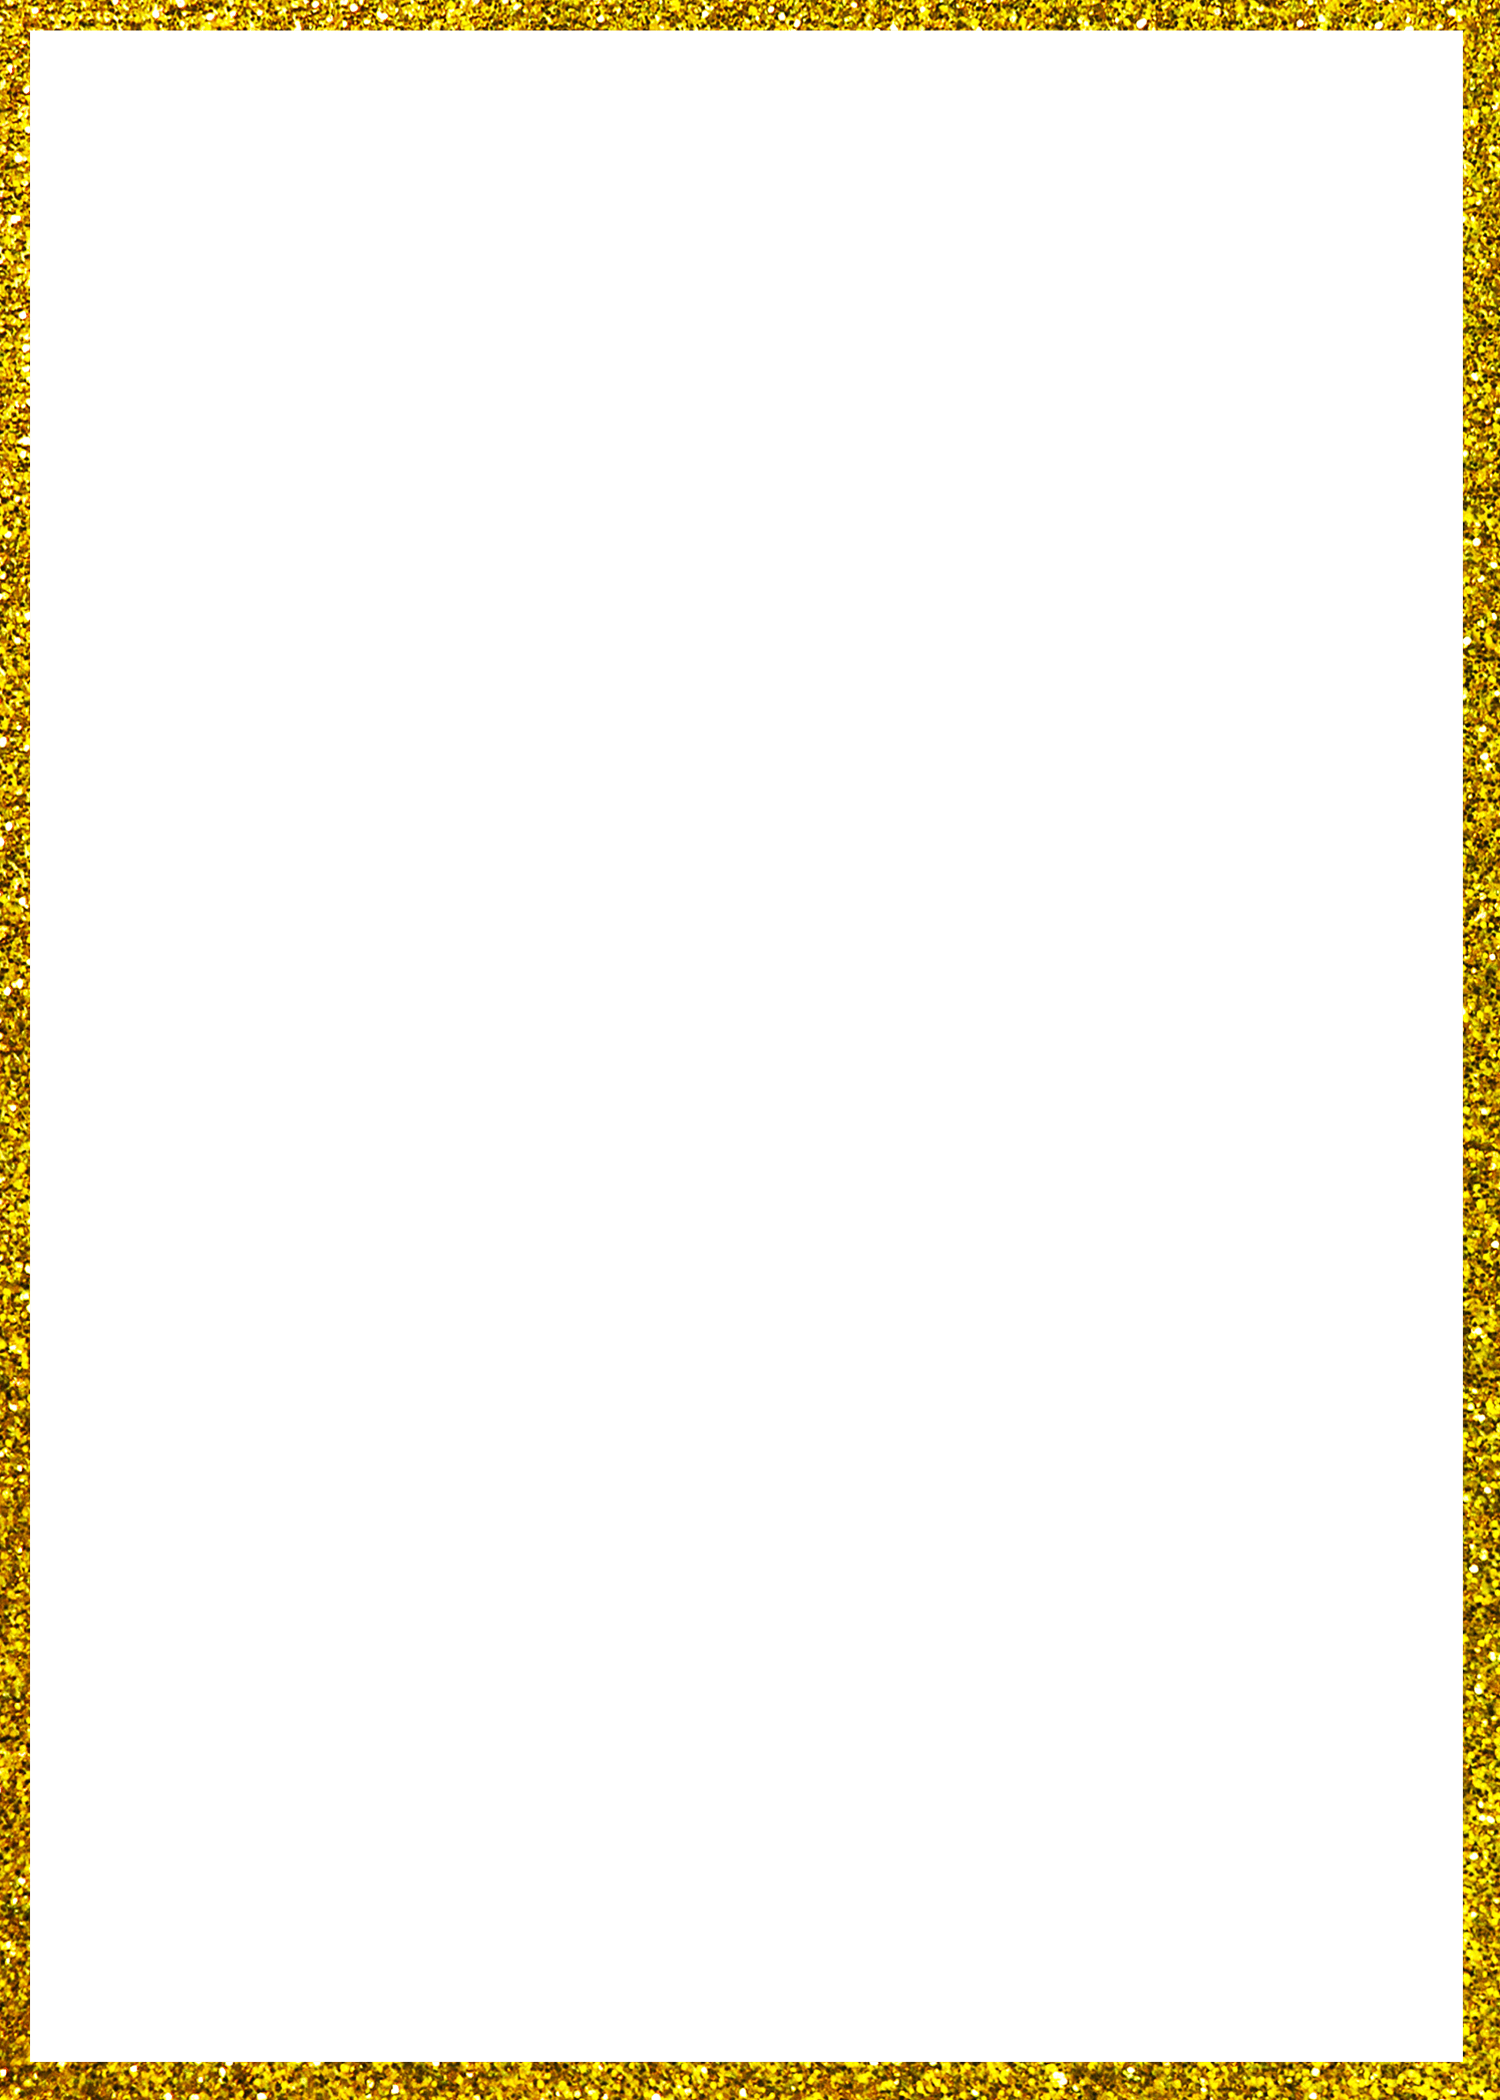 Pbl border rectangle diy. Gold glitter frame png